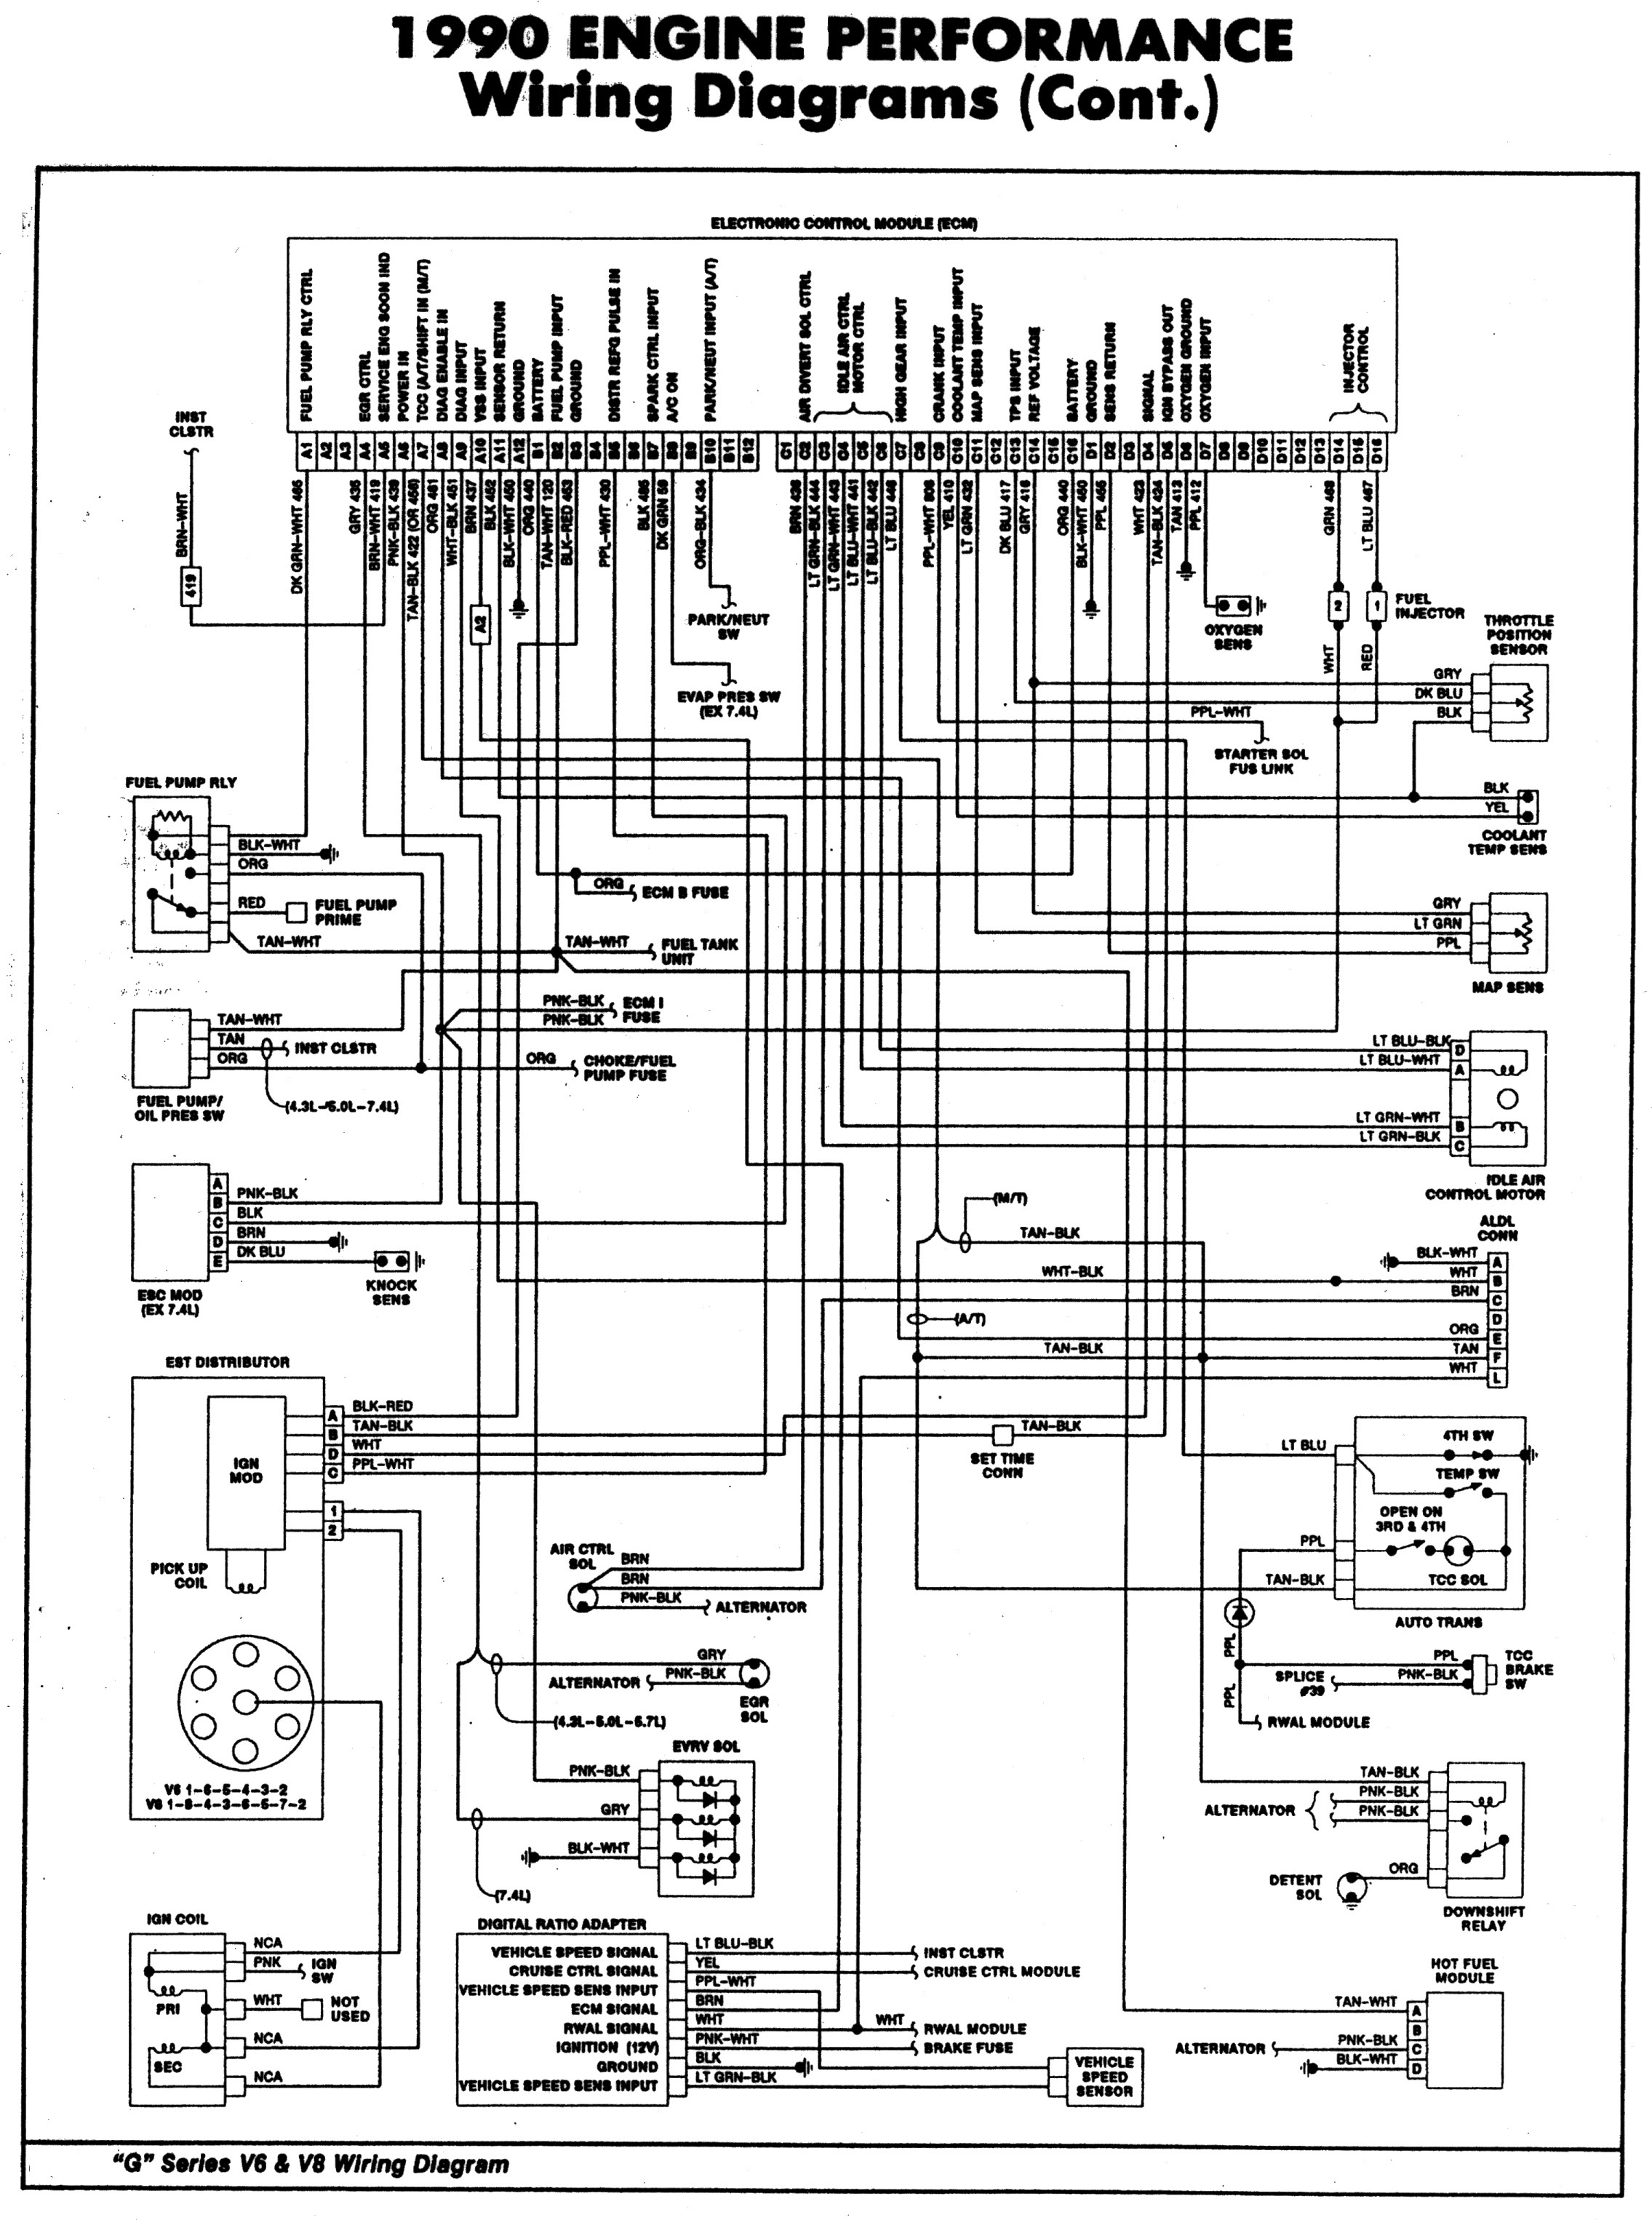 hight resolution of chevy tpi wiring diagram free download schematic wiring diagram 92 camaro wiring diagram free download schematic